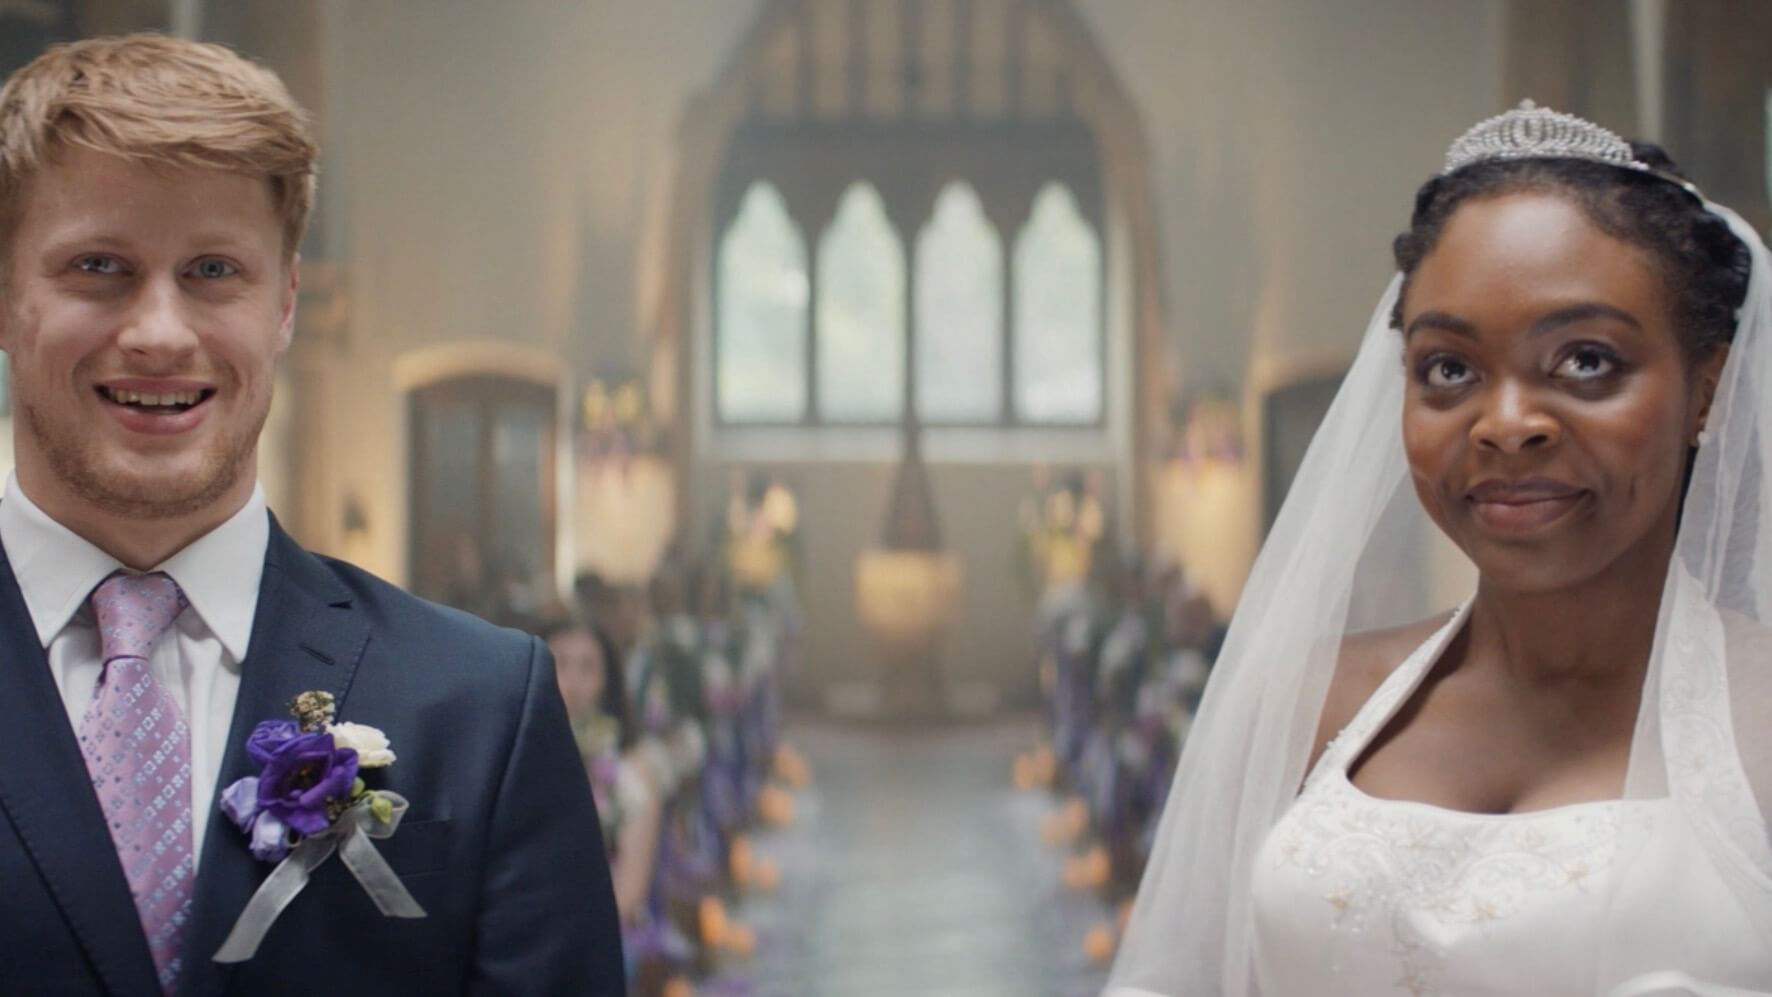 4Creative campaign cues up new Married at First Sight